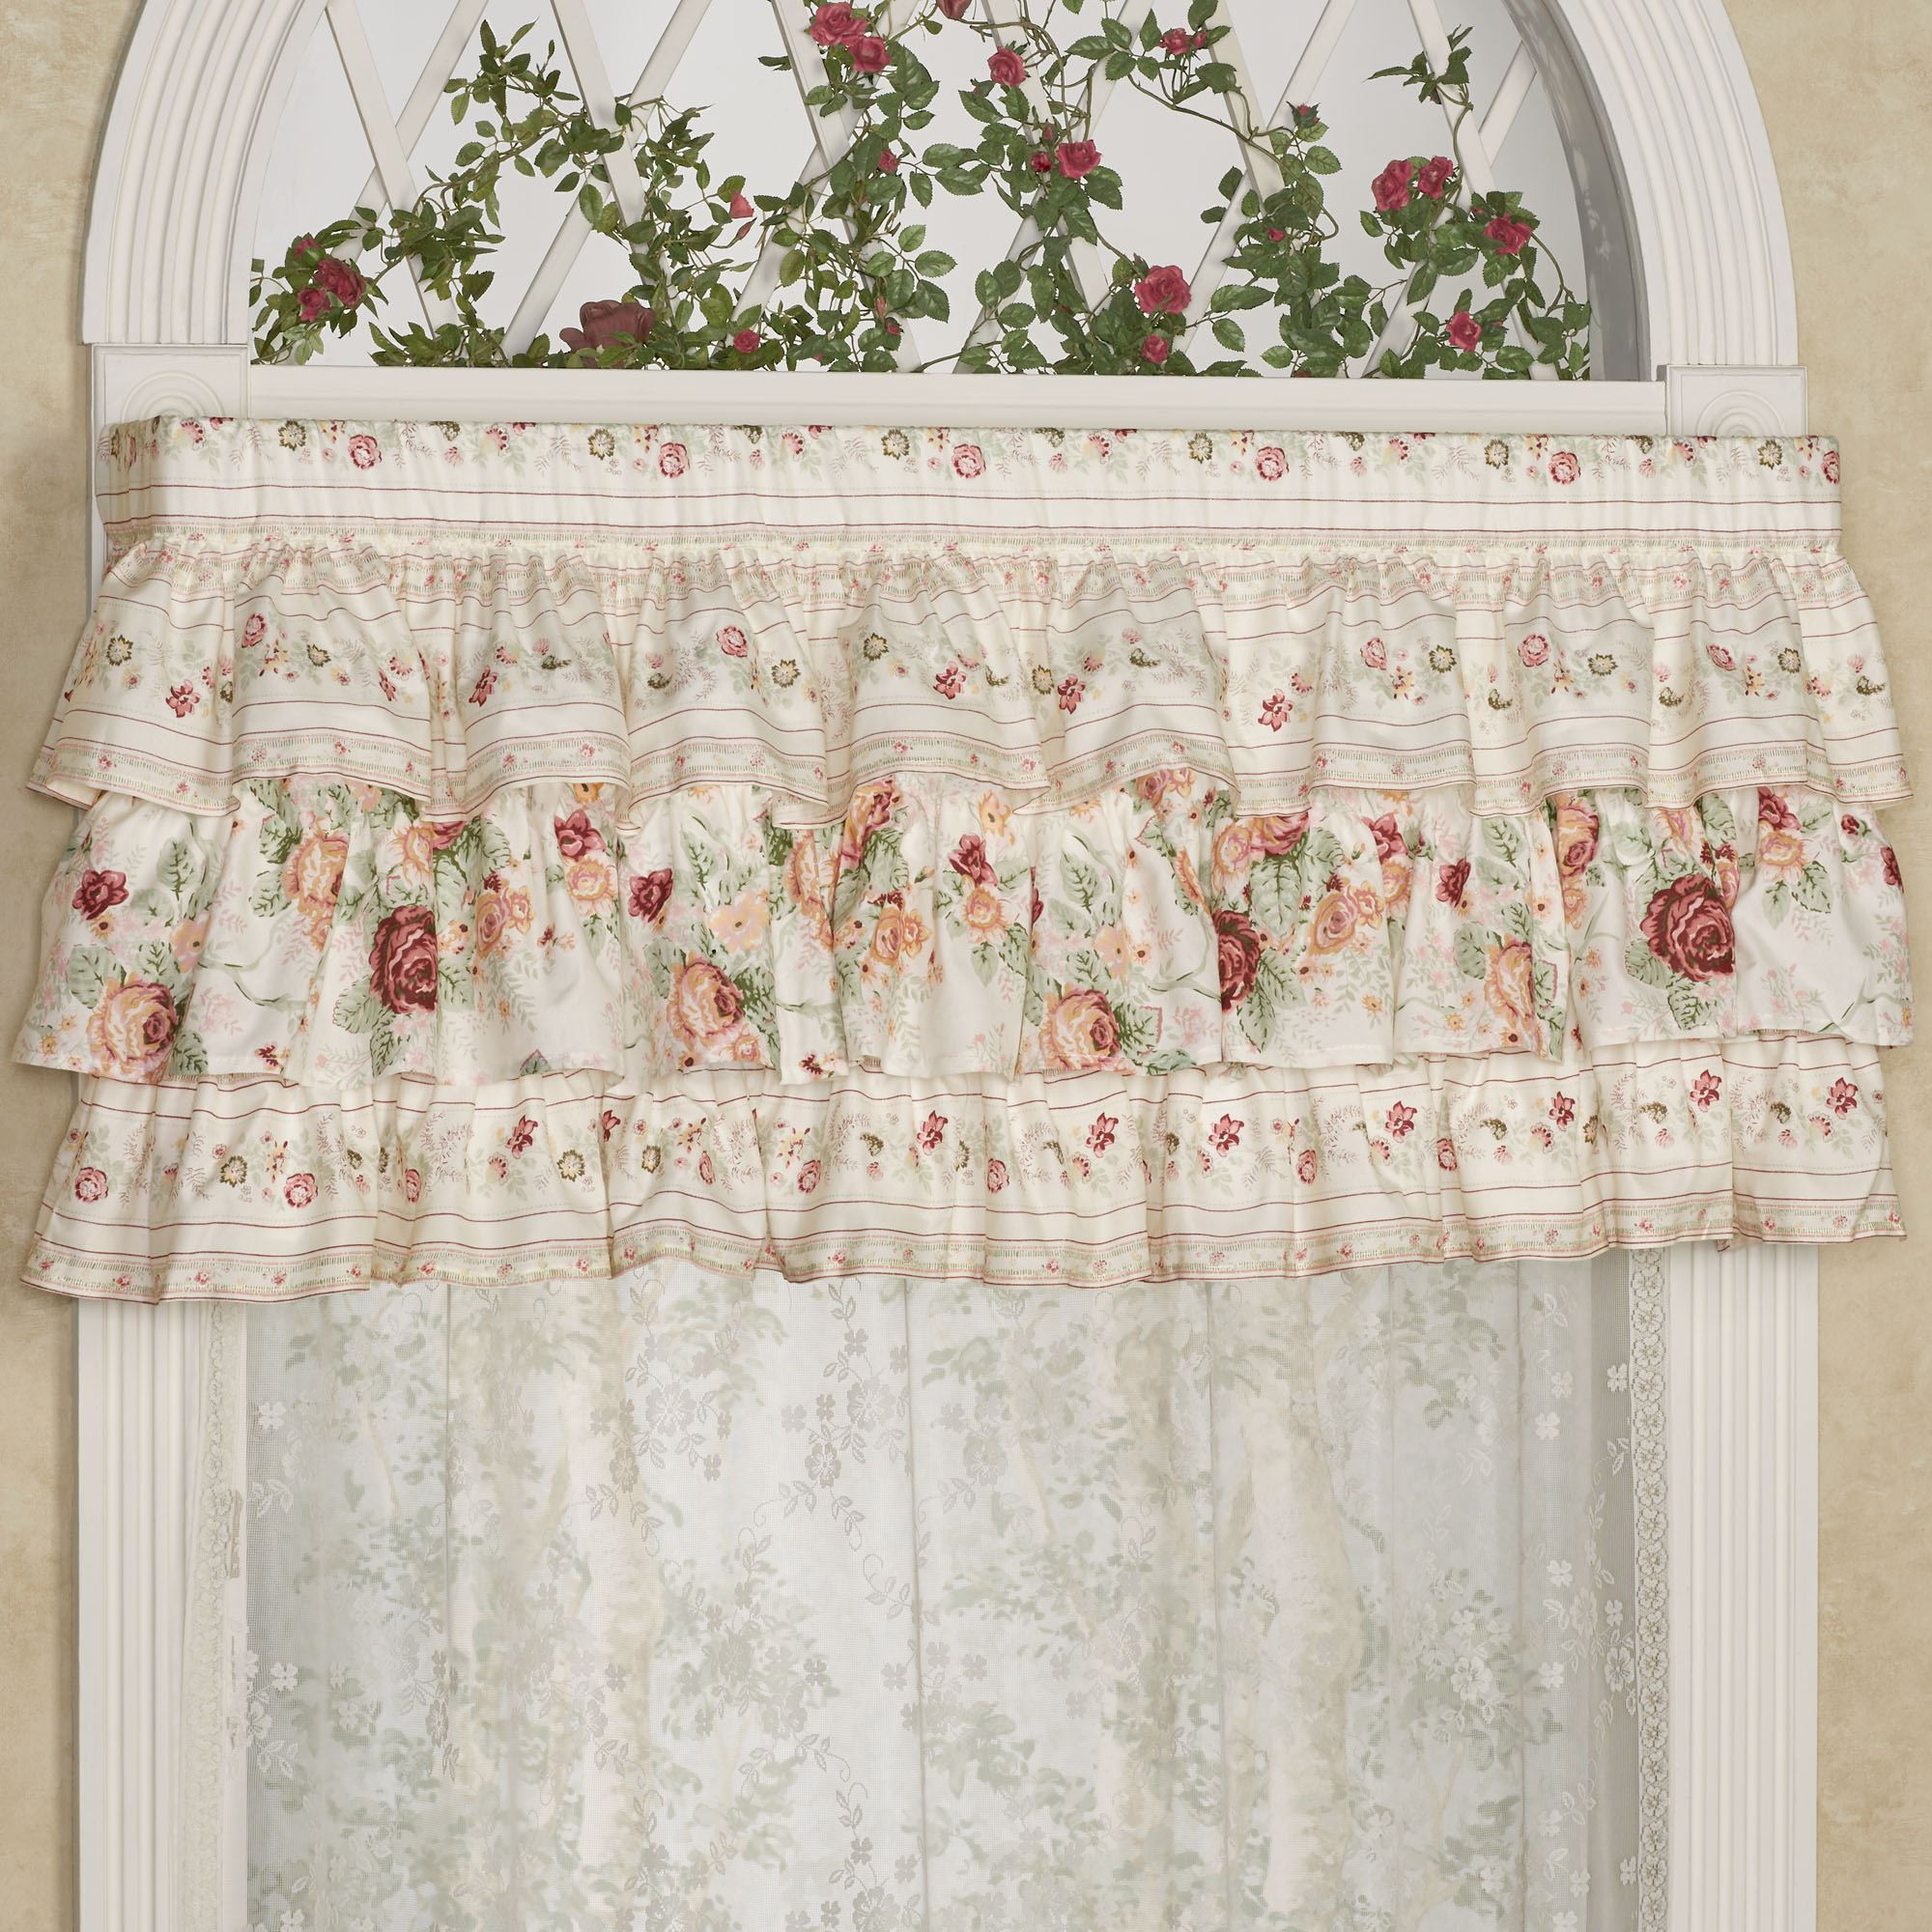 English Rose Floral Ruffled Valance Window Treatment